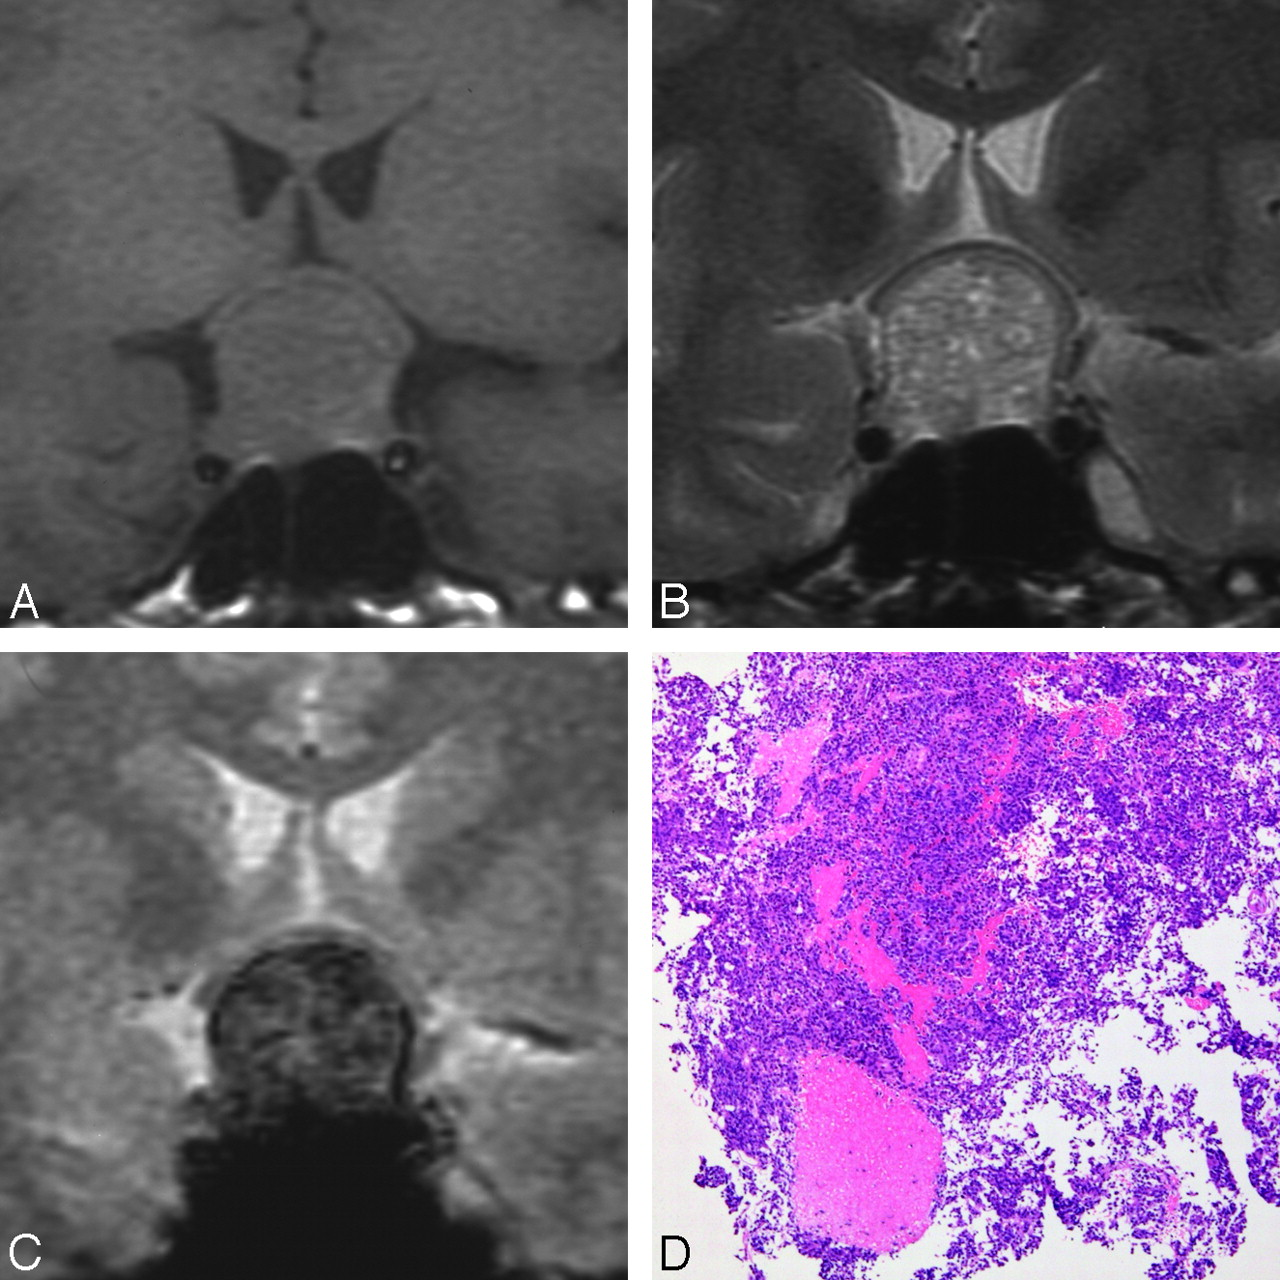 Assessment of Hemorrhage in Pituitary Macroadenoma by T2*-Weighted